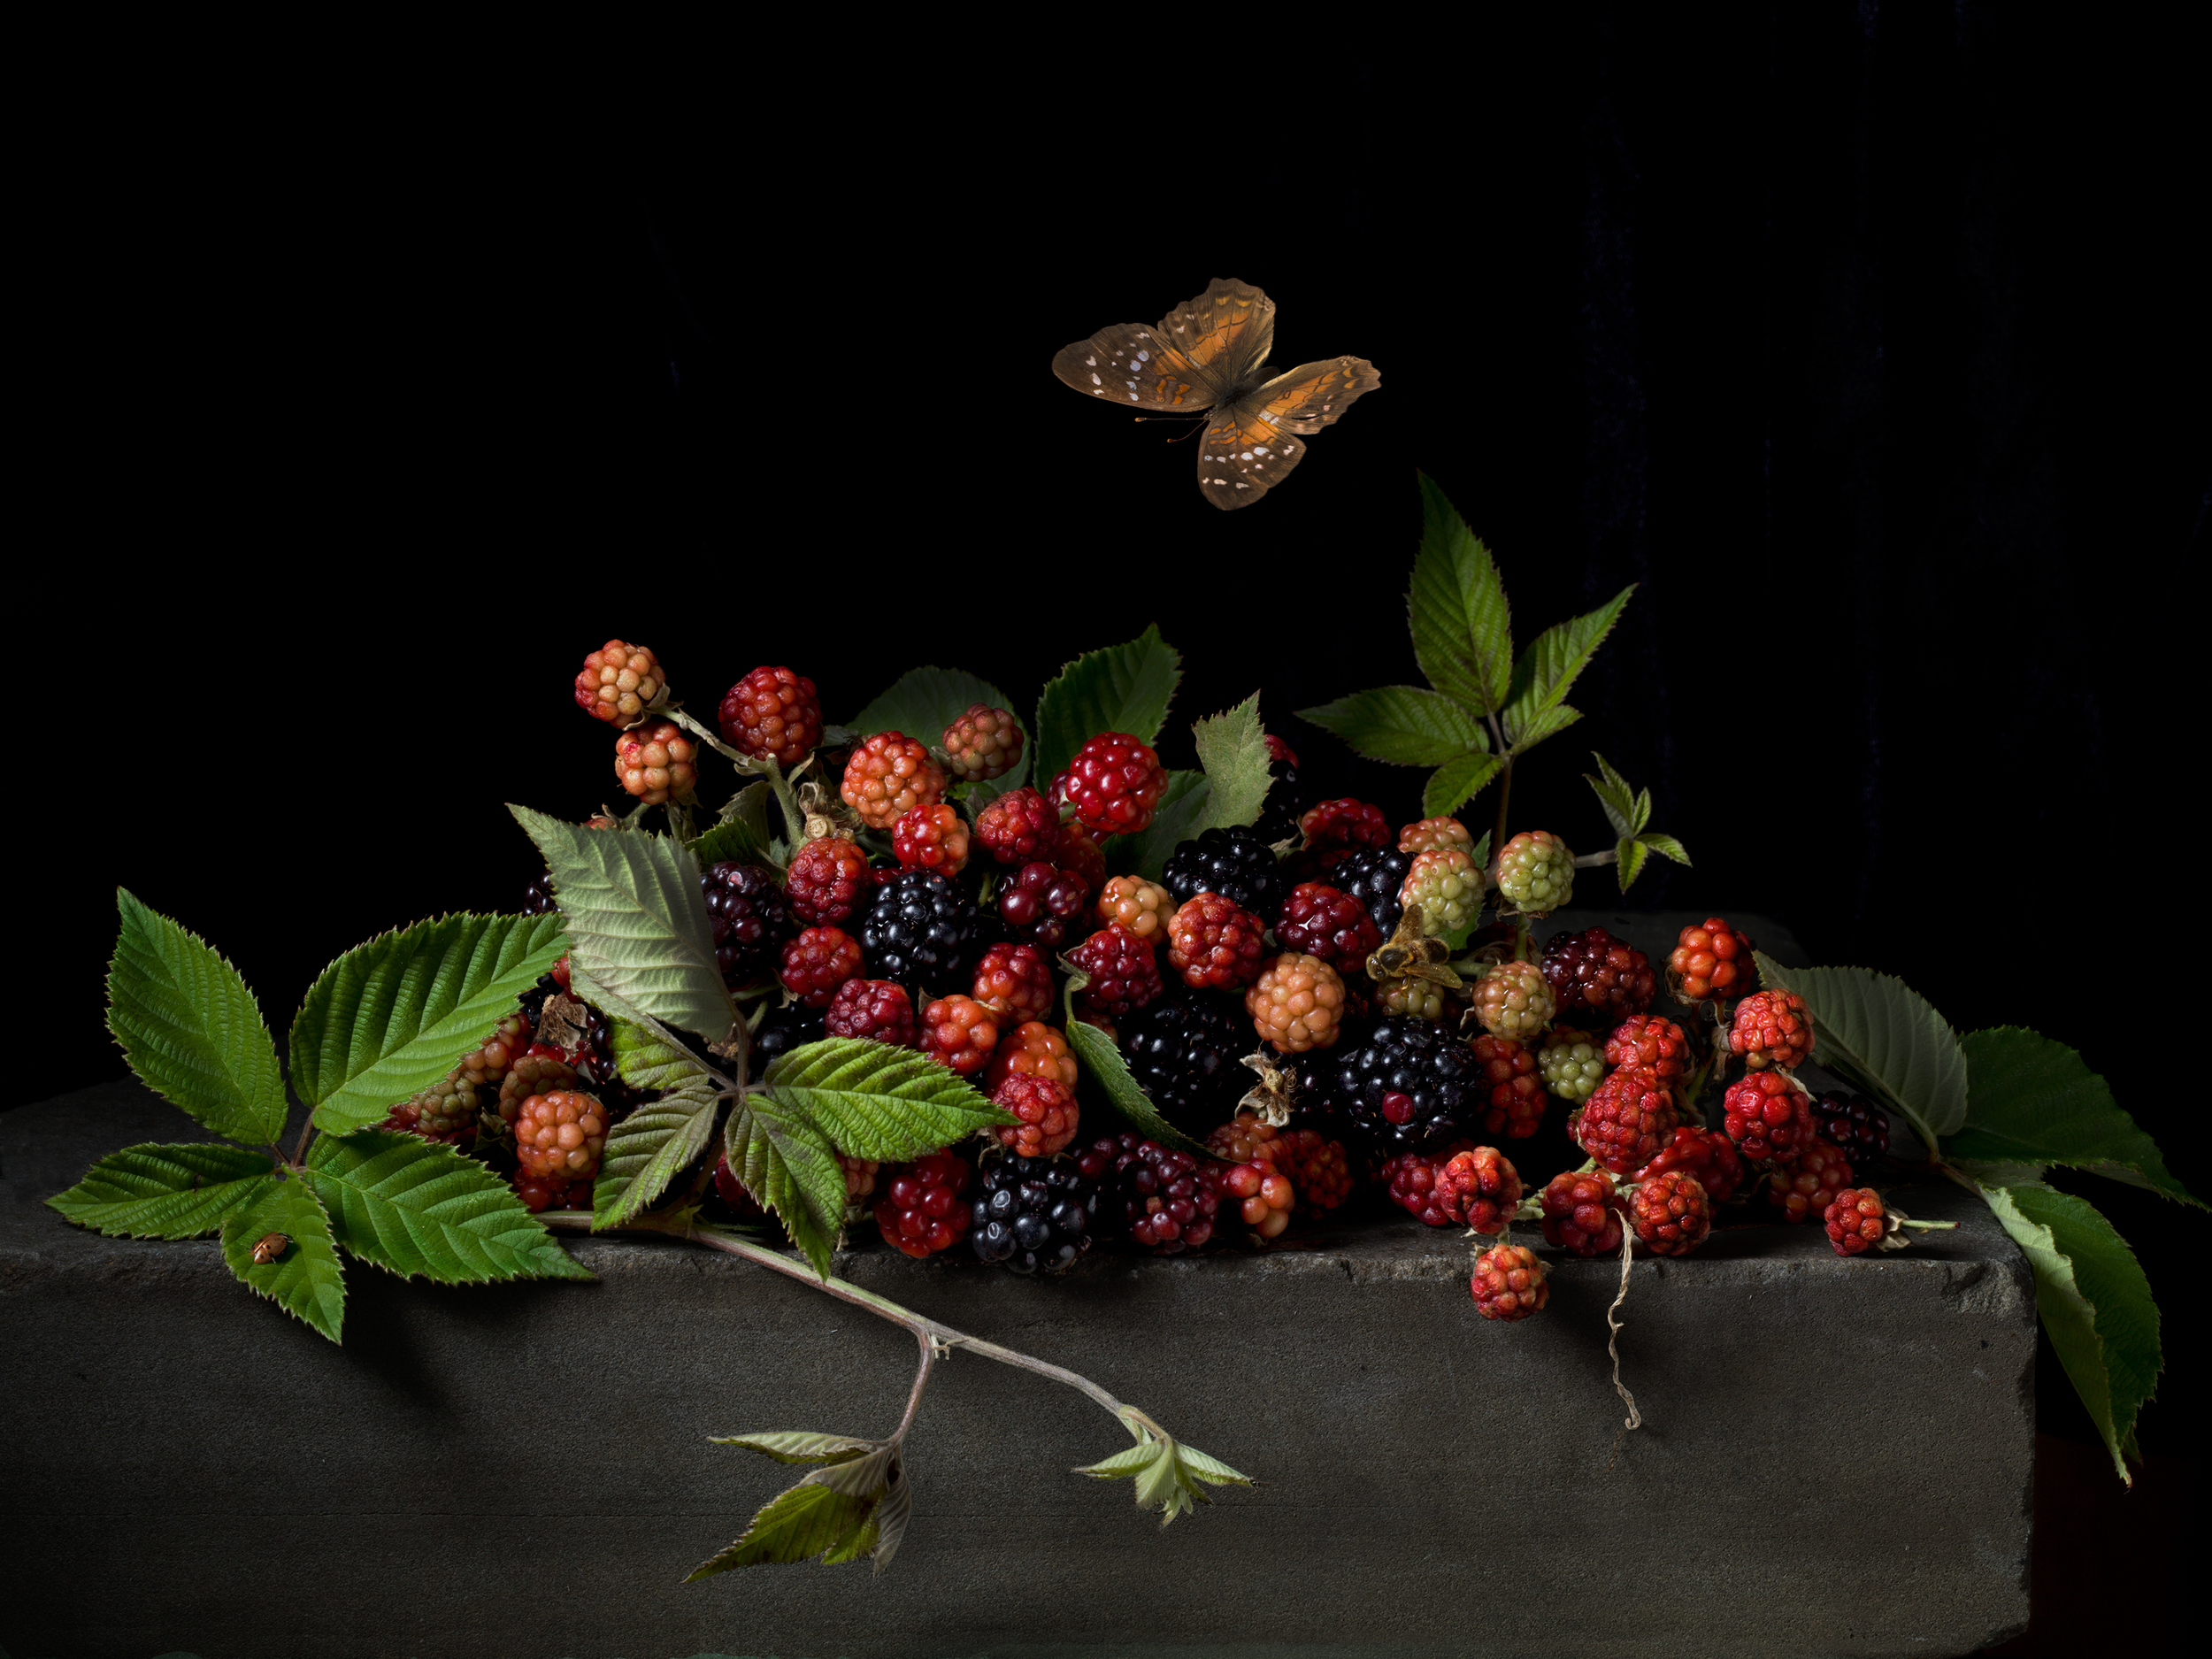 Blackberries and Butterfly, After A.C., 2015